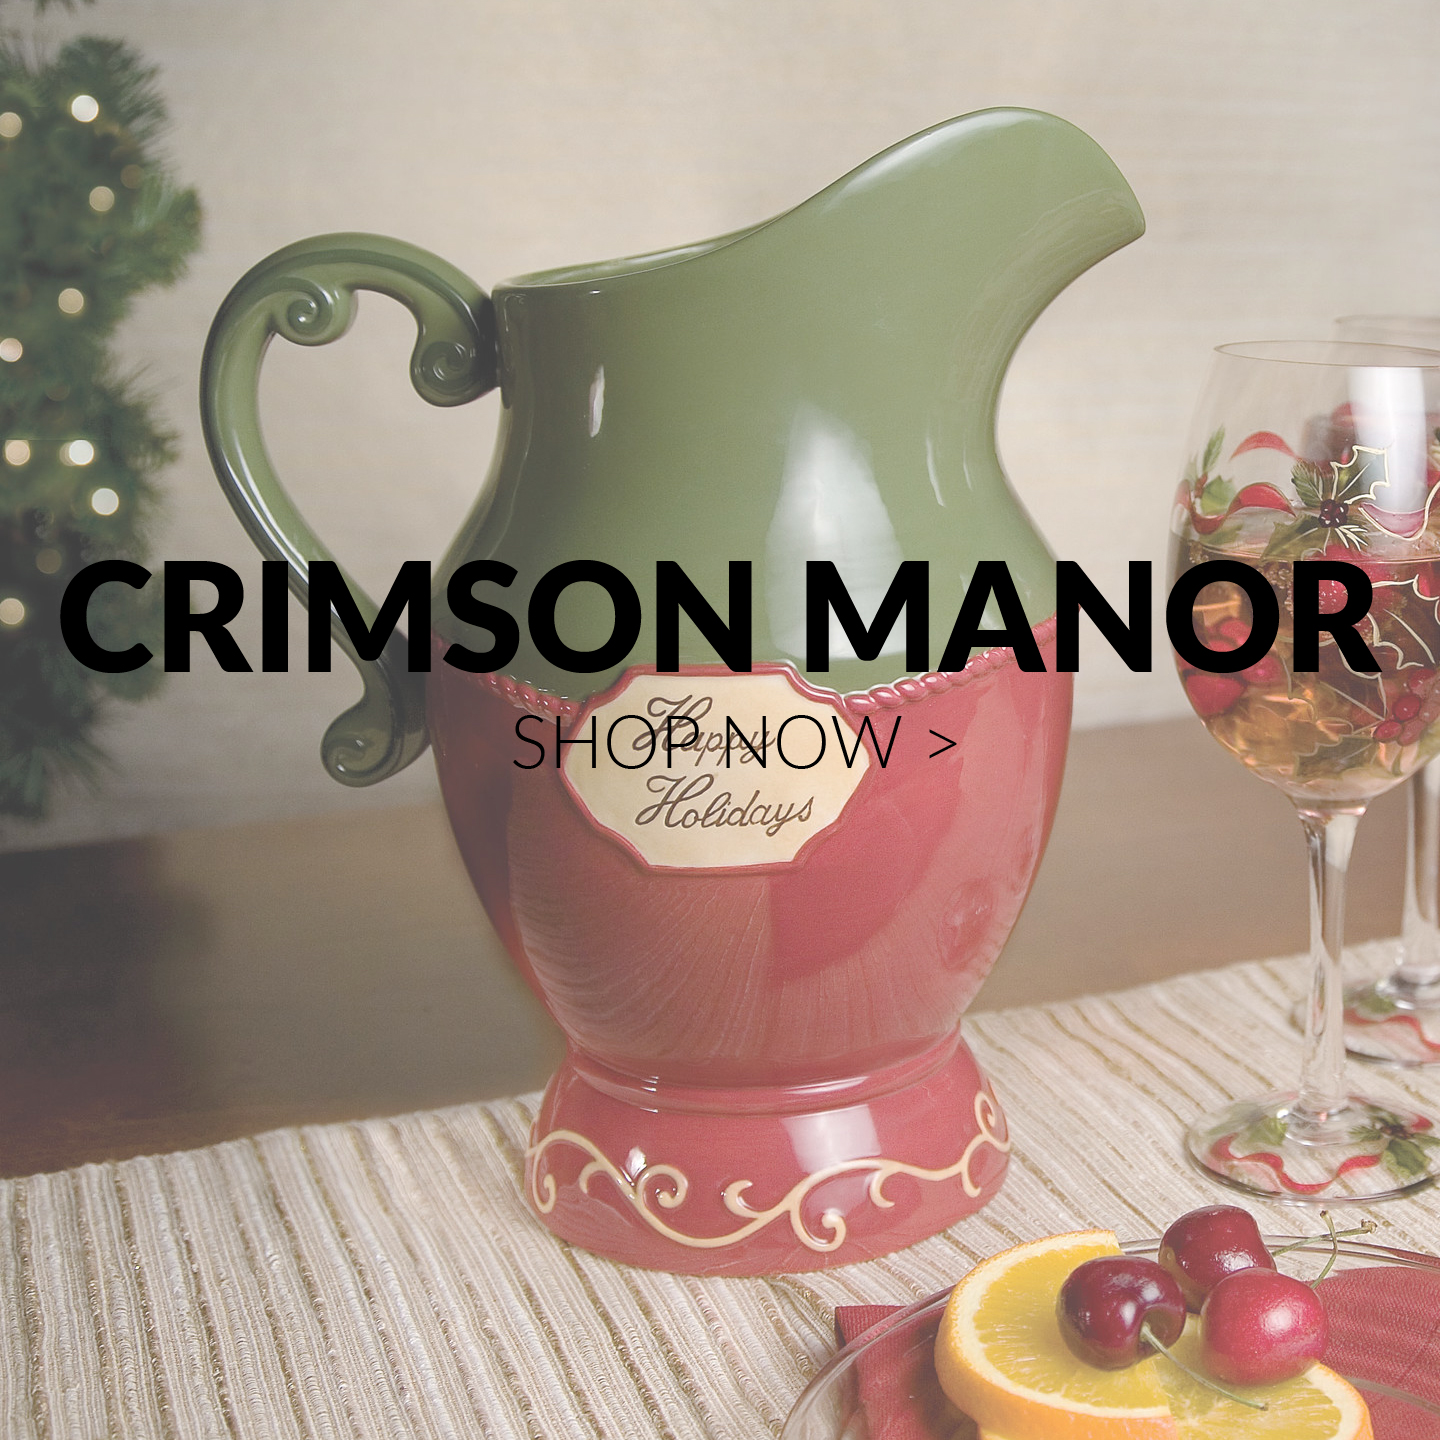 Crimson Manor